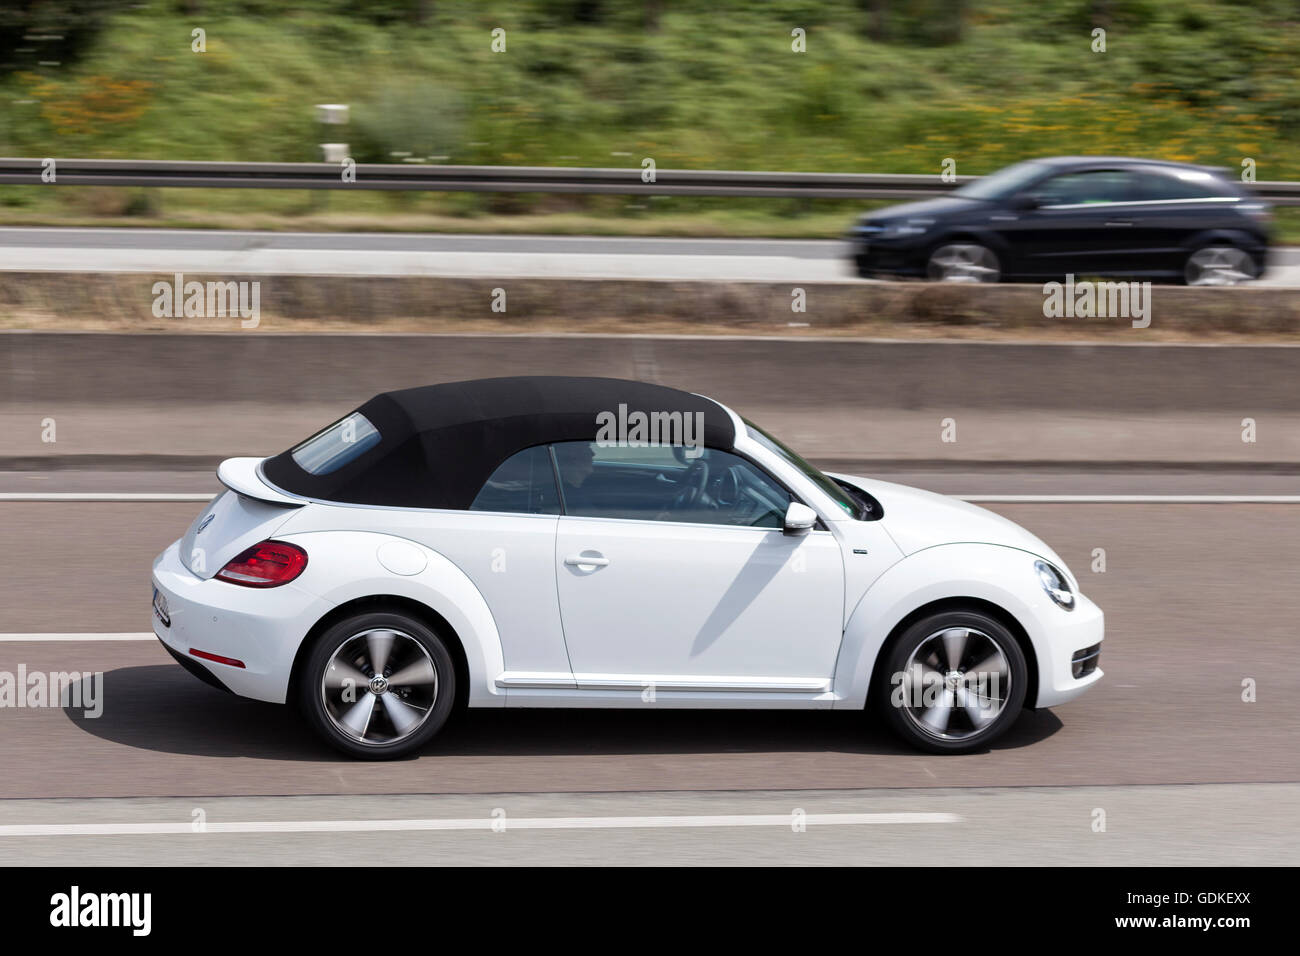 White Volkswagen Beetle Convertible High Resolution Stock Photography And Images Alamy